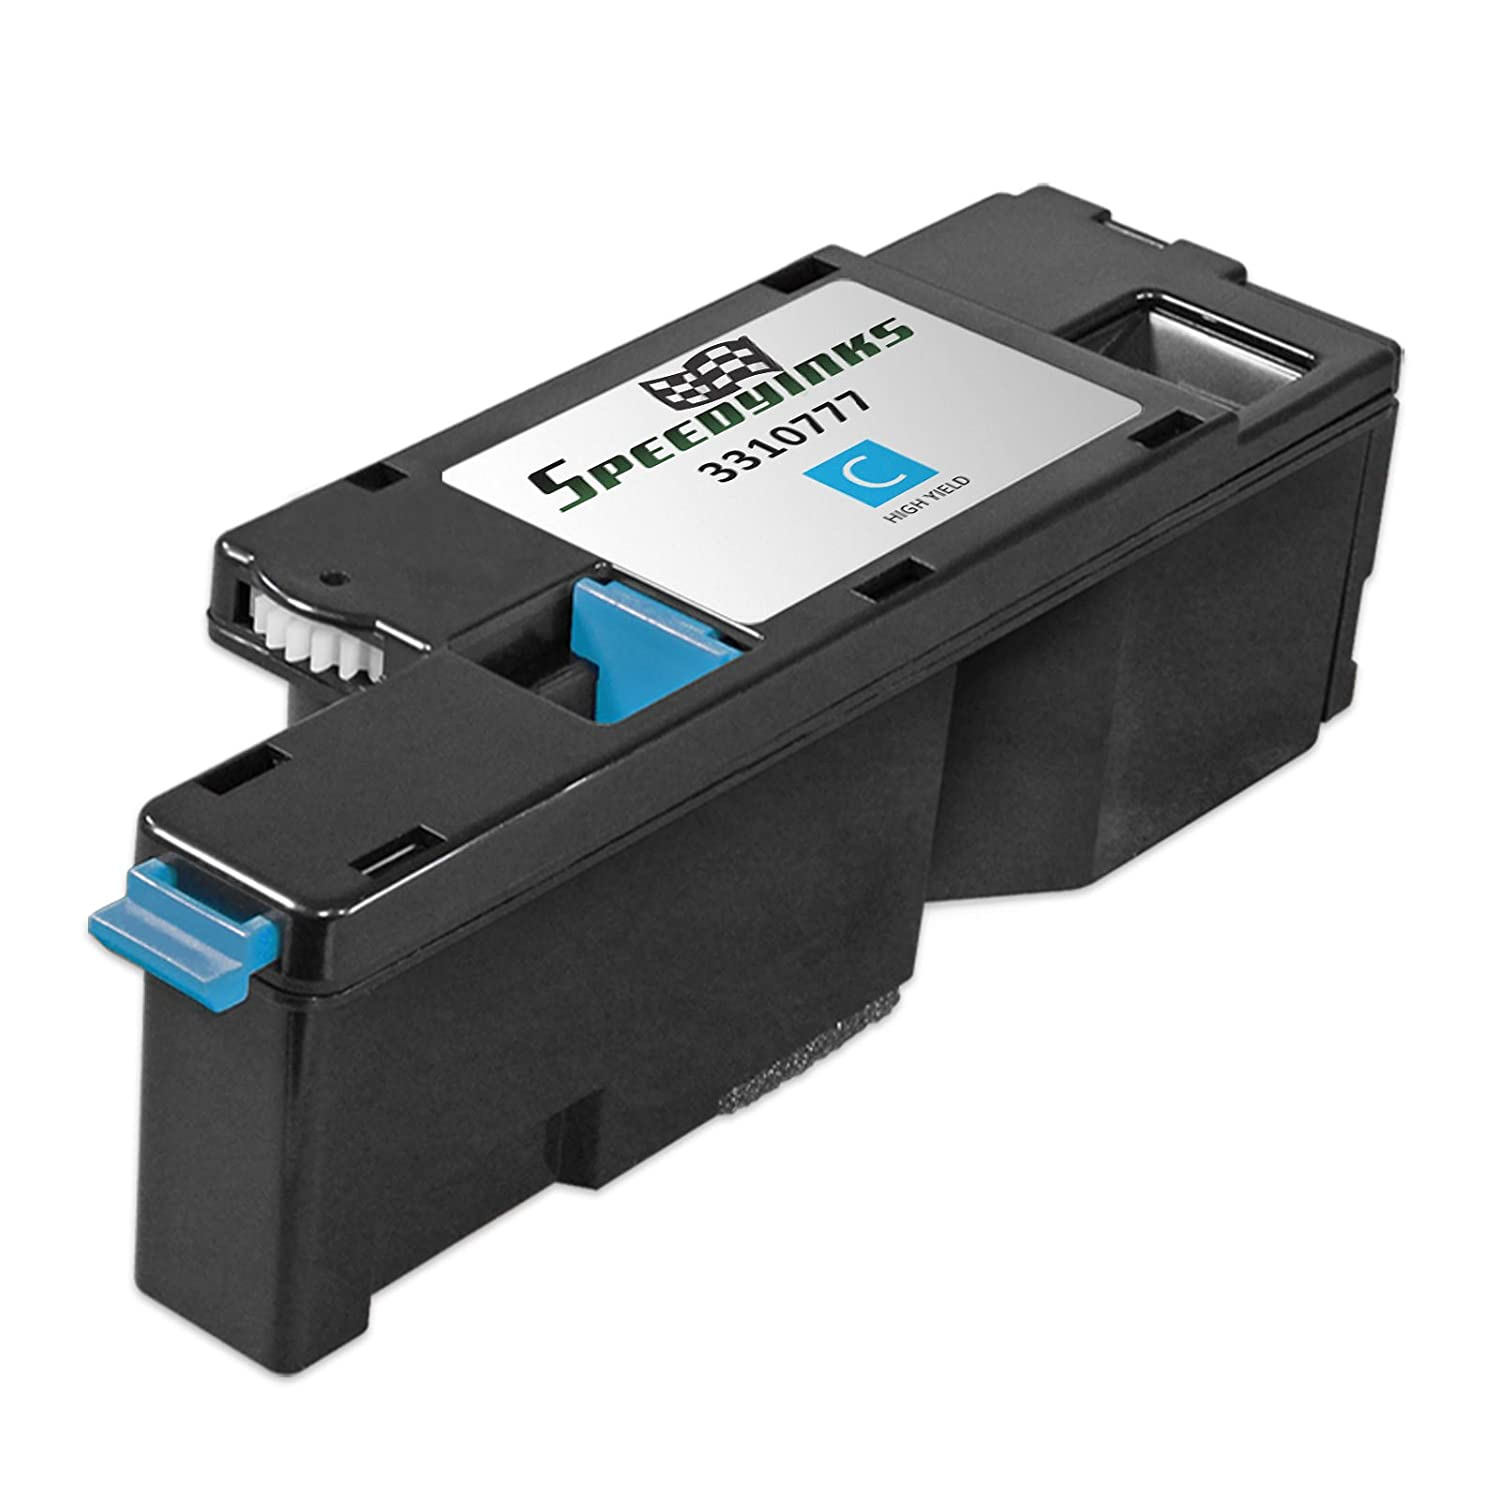 Speedy Inks - Compatible Dell 1250 331-0777 / FYFKF Cyan Toner Cartridge for Dell 1250c, 1350cnw, 1355cn, and 1355cnw Printers